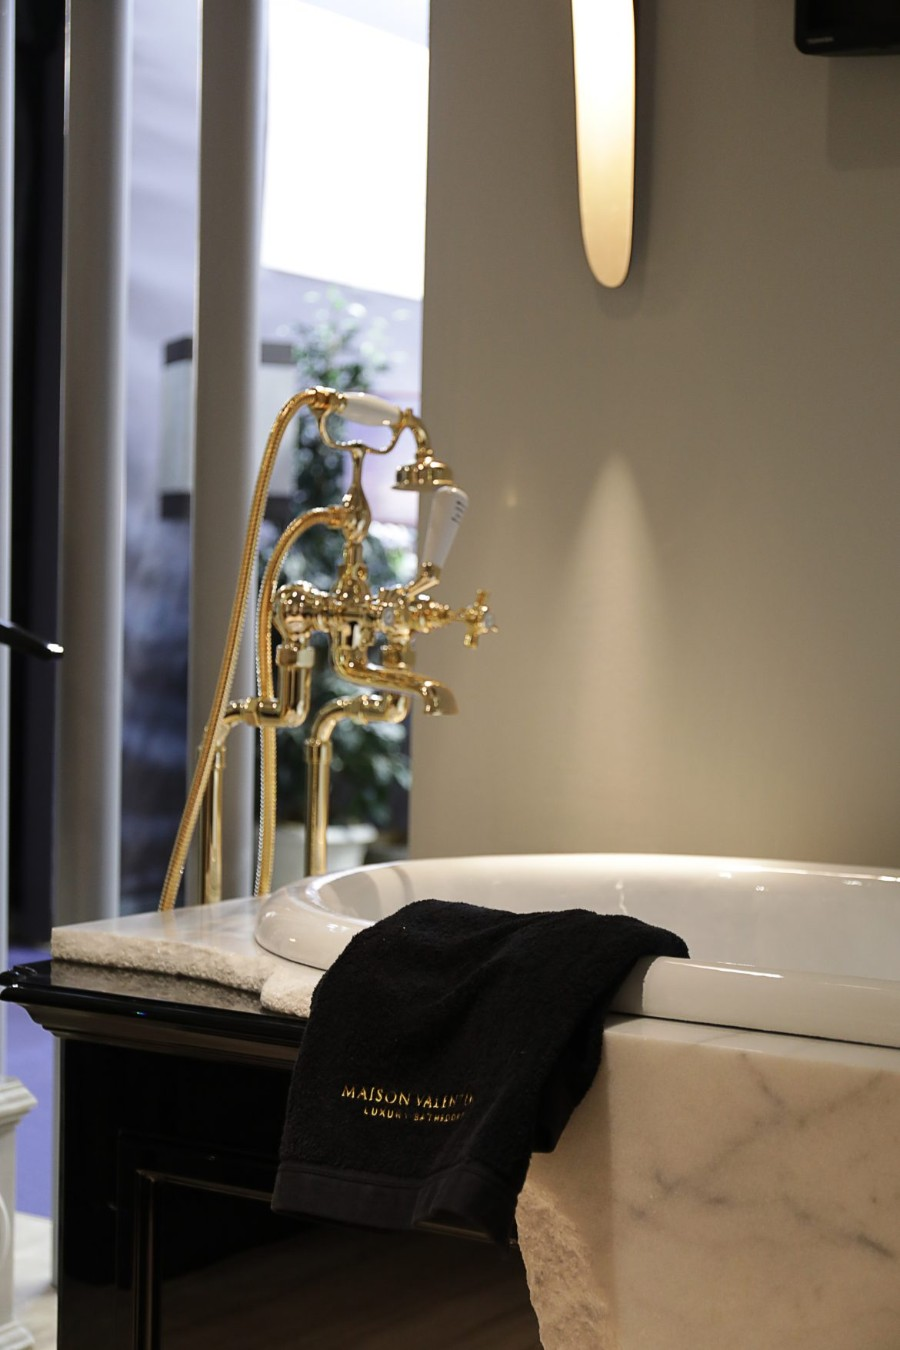 CERSAIE 2019 - Find your Royal Bubble Bathtub at this Event cersaie 2019 CERSAIE 2019 – Find your Royal Bubble Bathtub at this Event CERSAIE 2019 Find your Royal Bubble Bathtub at this Event 8 1 1